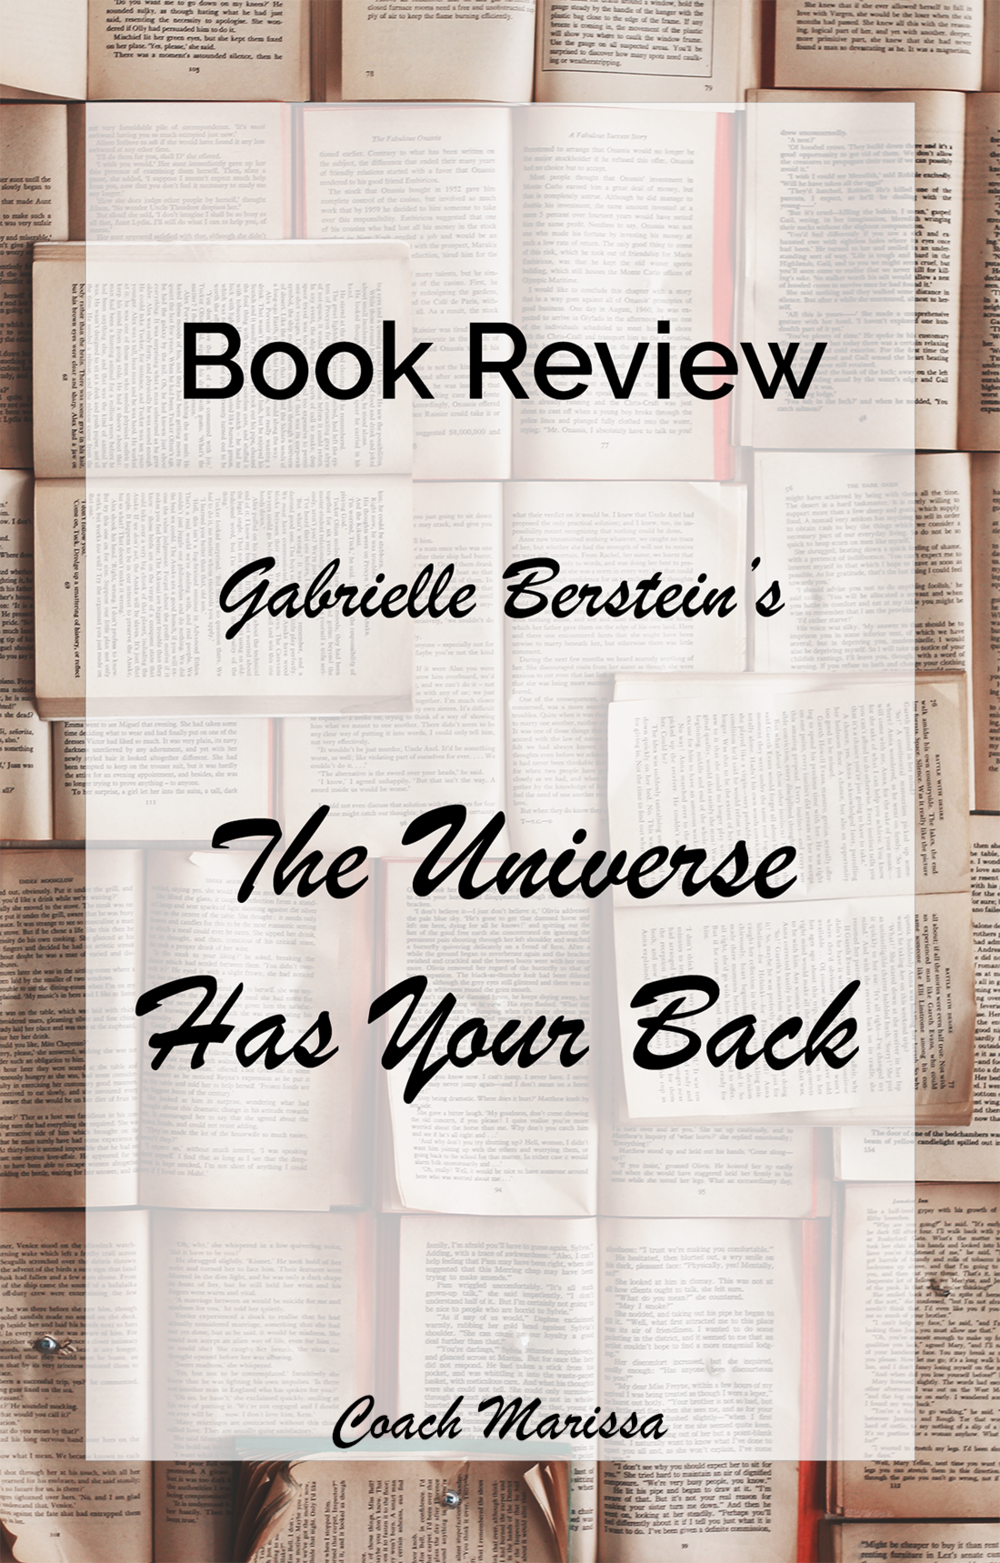 gabrielle bernstein's the universe has your back - read this book and feel inspired for personal growth!